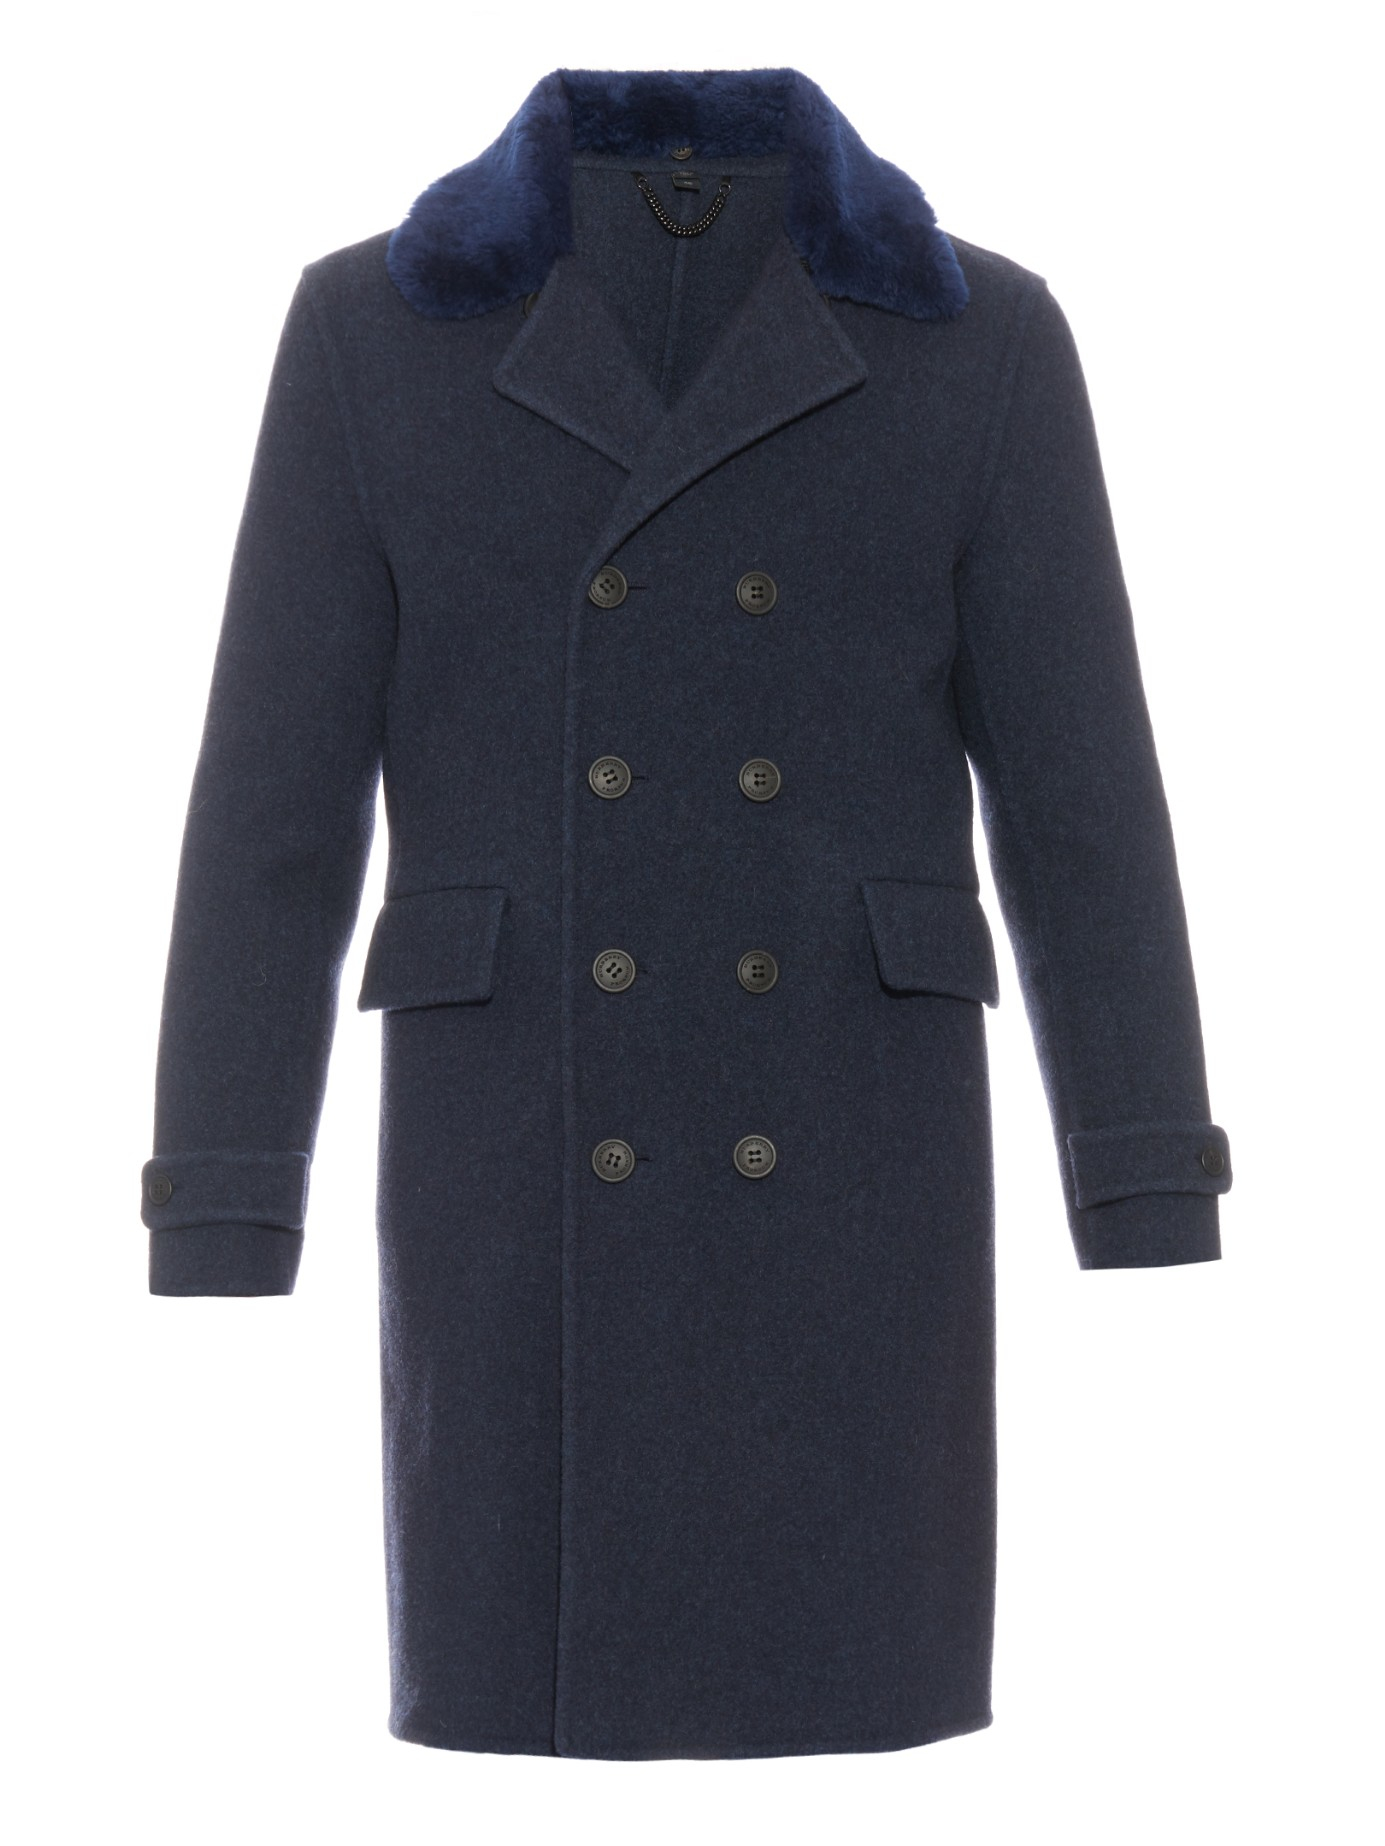 Burberry prorsum Shearling Collar Wool Coat in Blue for Men | Lyst